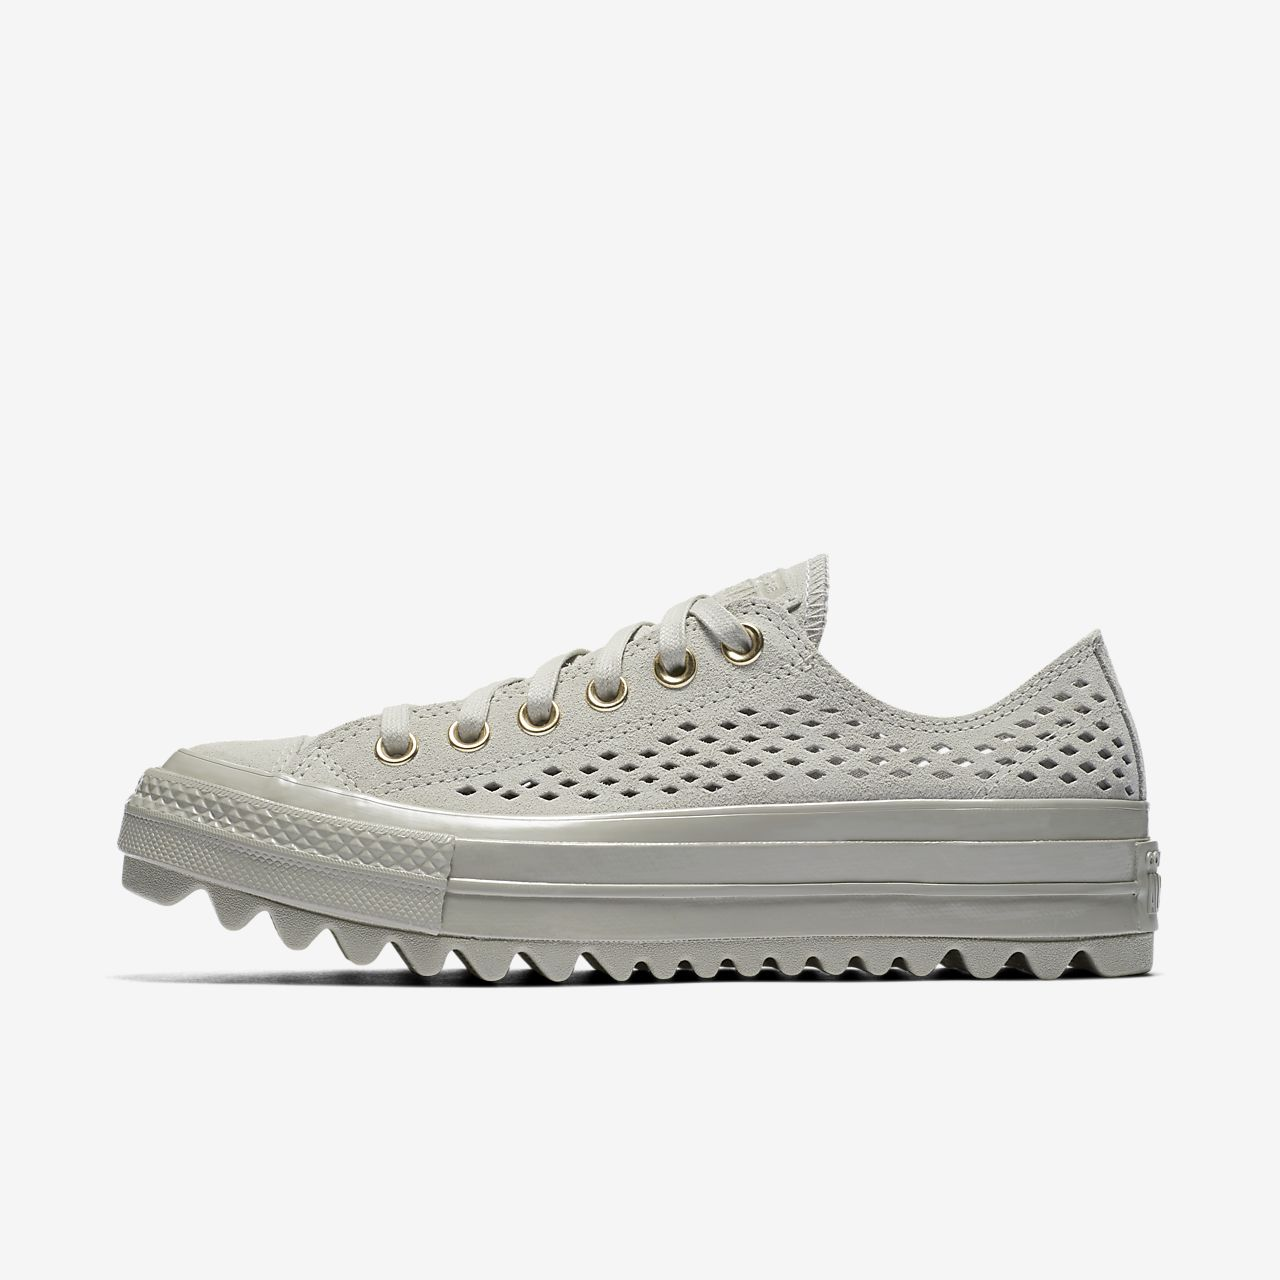 Converse Chuck Taylor All Star Lift Ripple Perforated Suede Low Top Women's Shoe